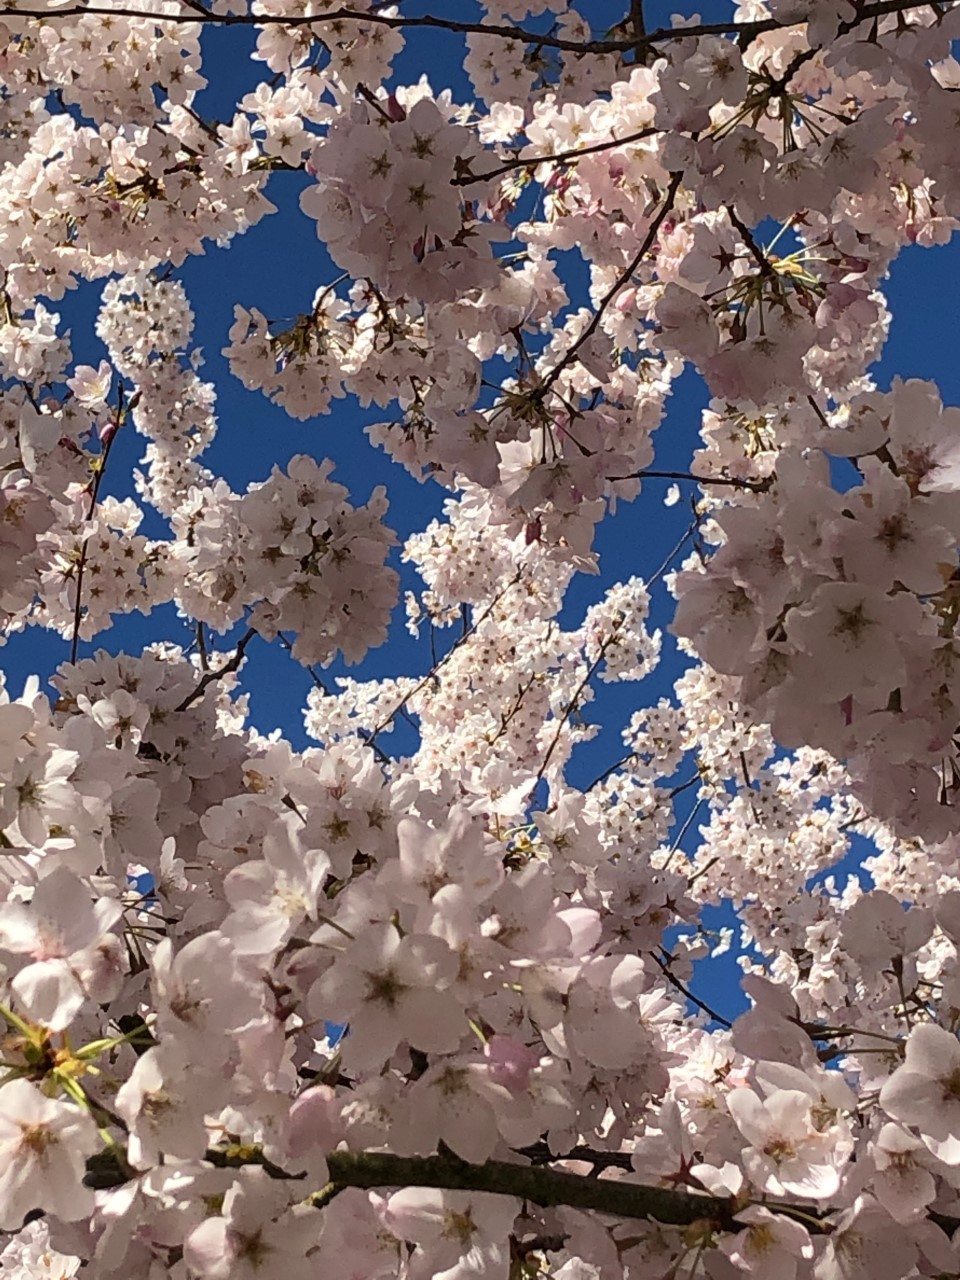 Spring cherry blossoms have been a reminder of life.